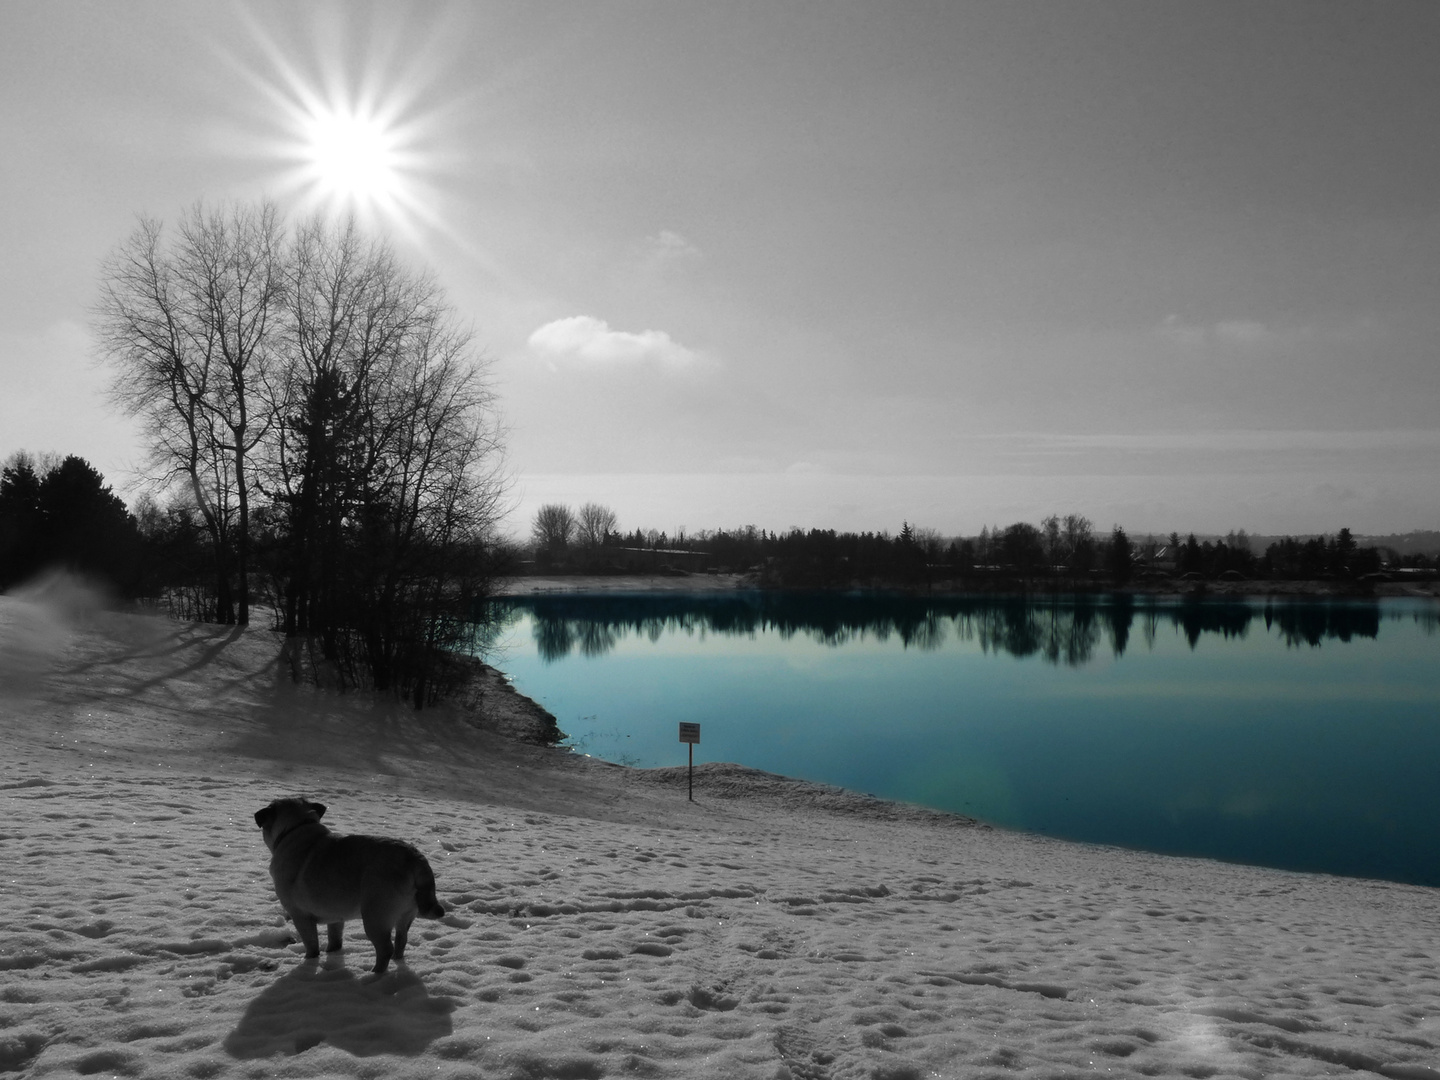 Mops am See